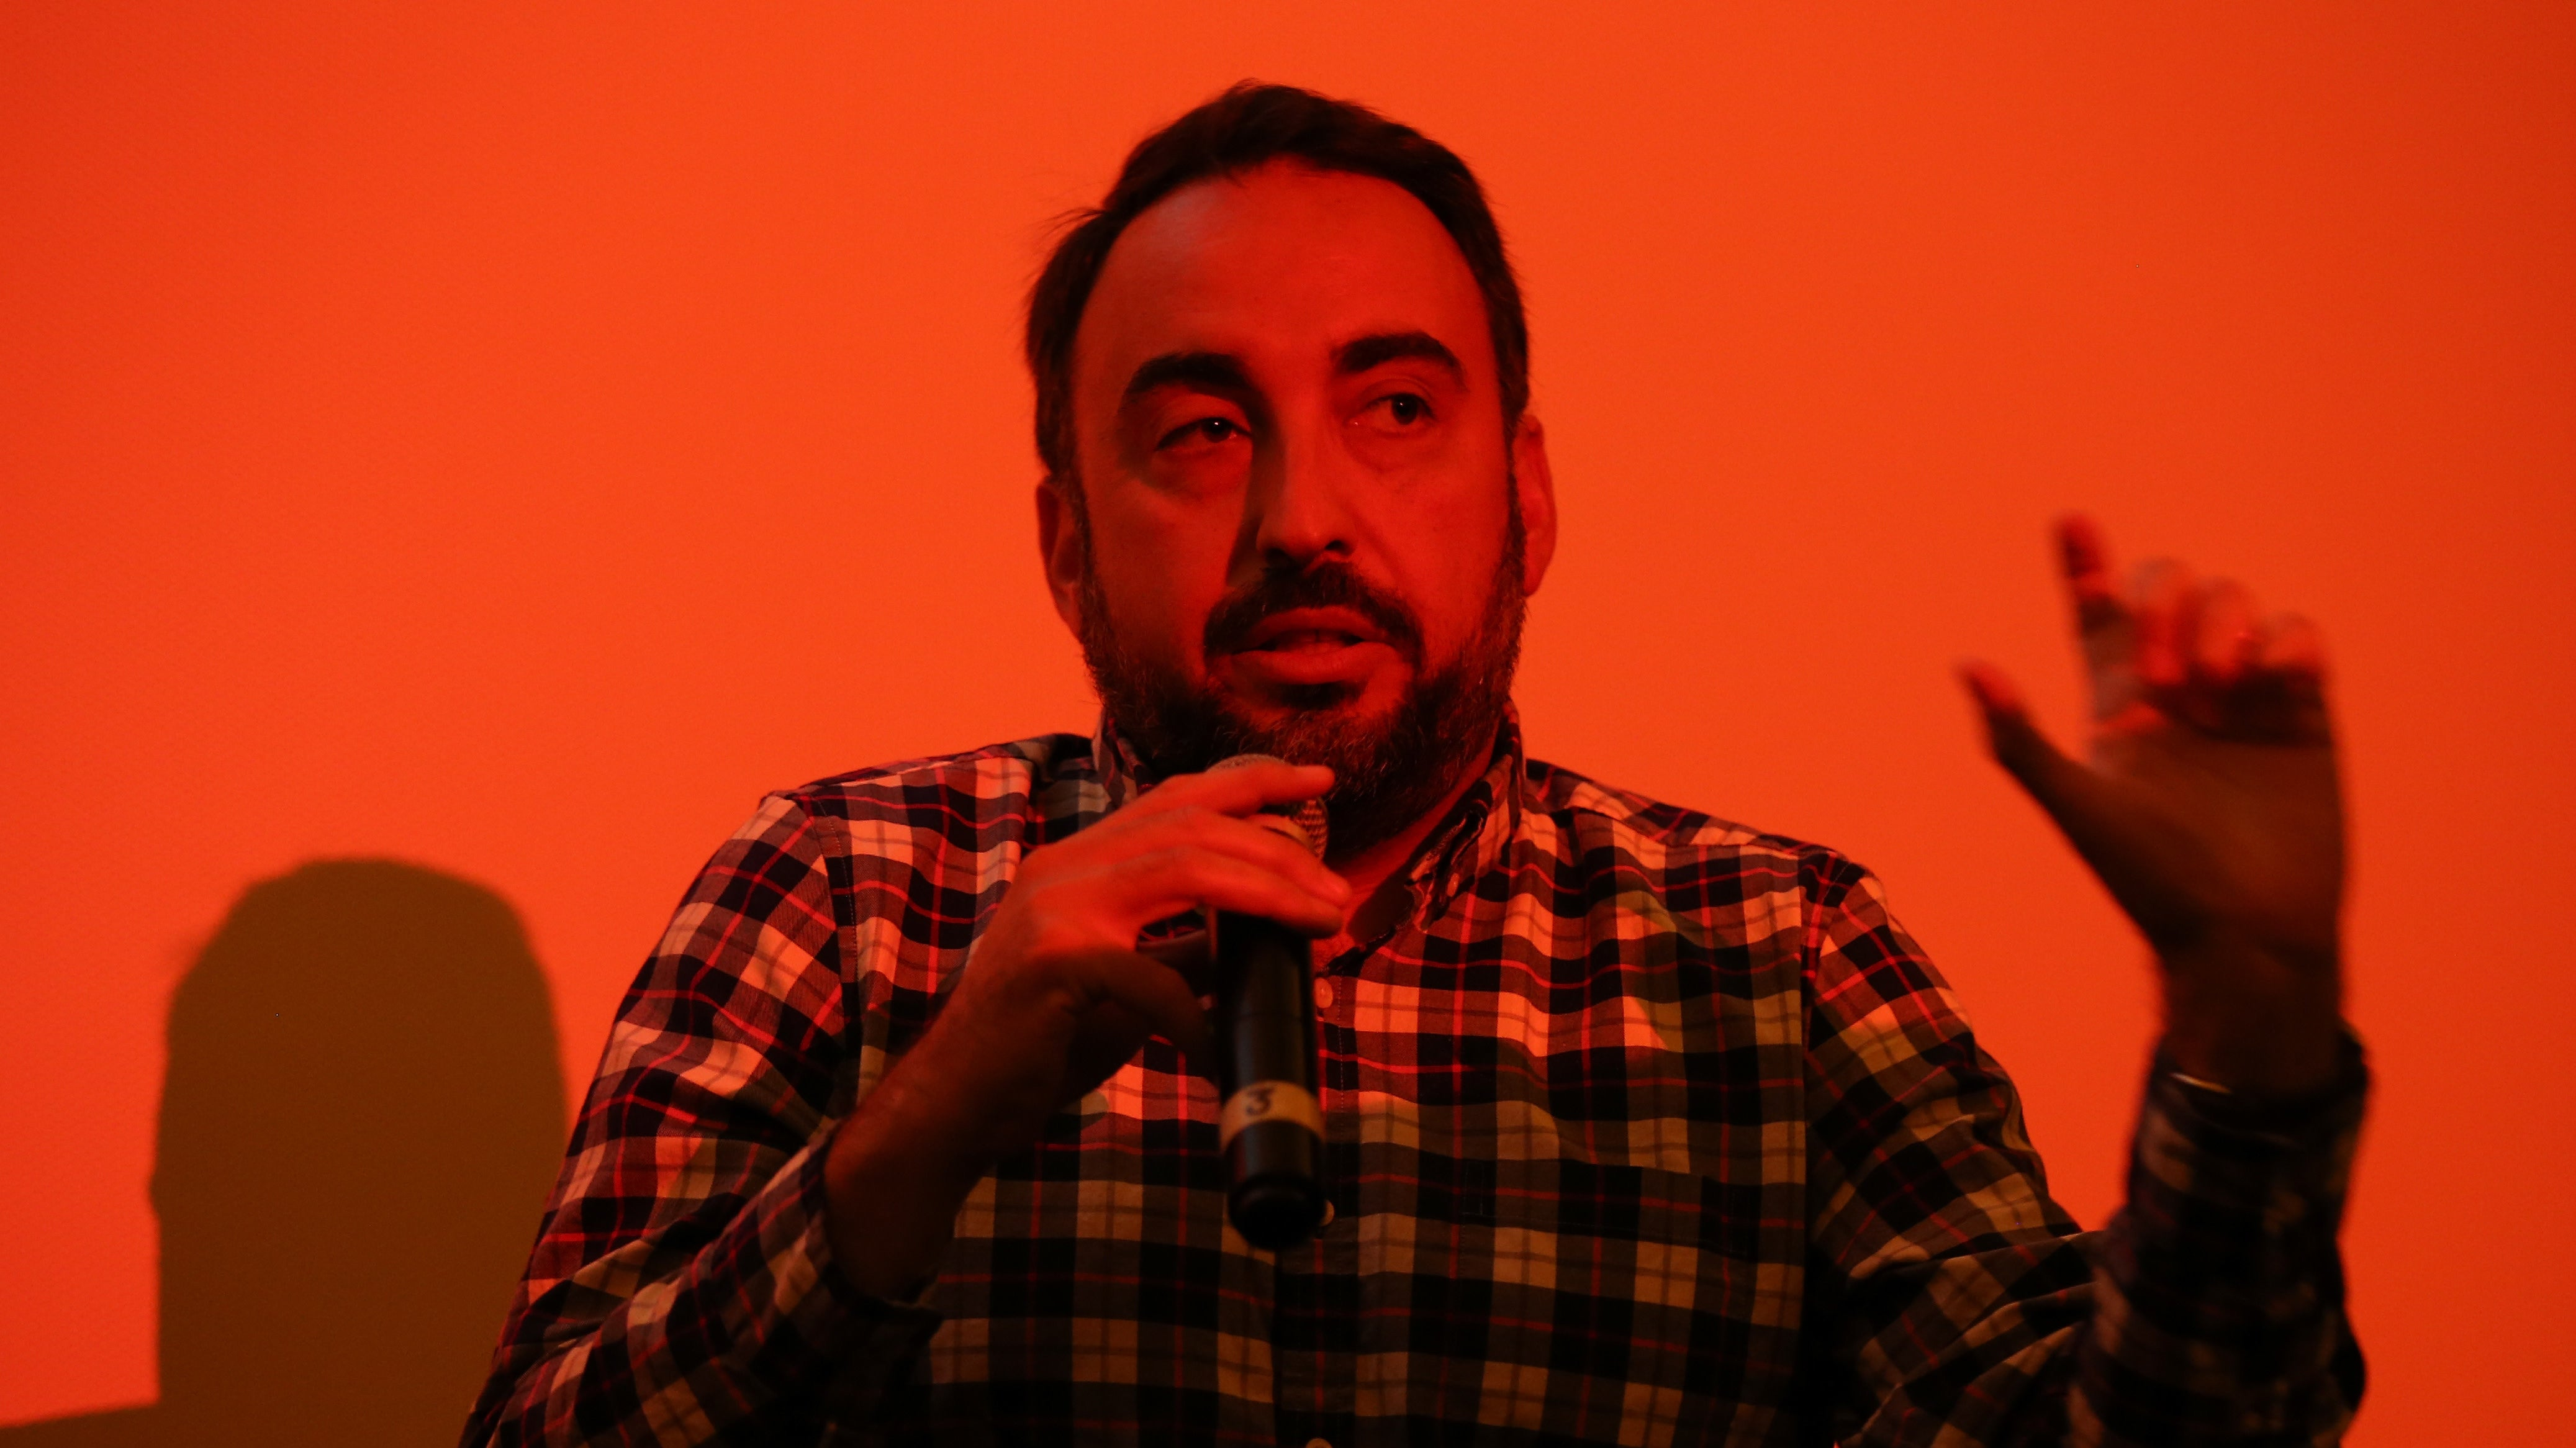 Alex Stamos, Ex-Facebook Security Chief, Blames Journalists For Cambridge Analytica Fallout